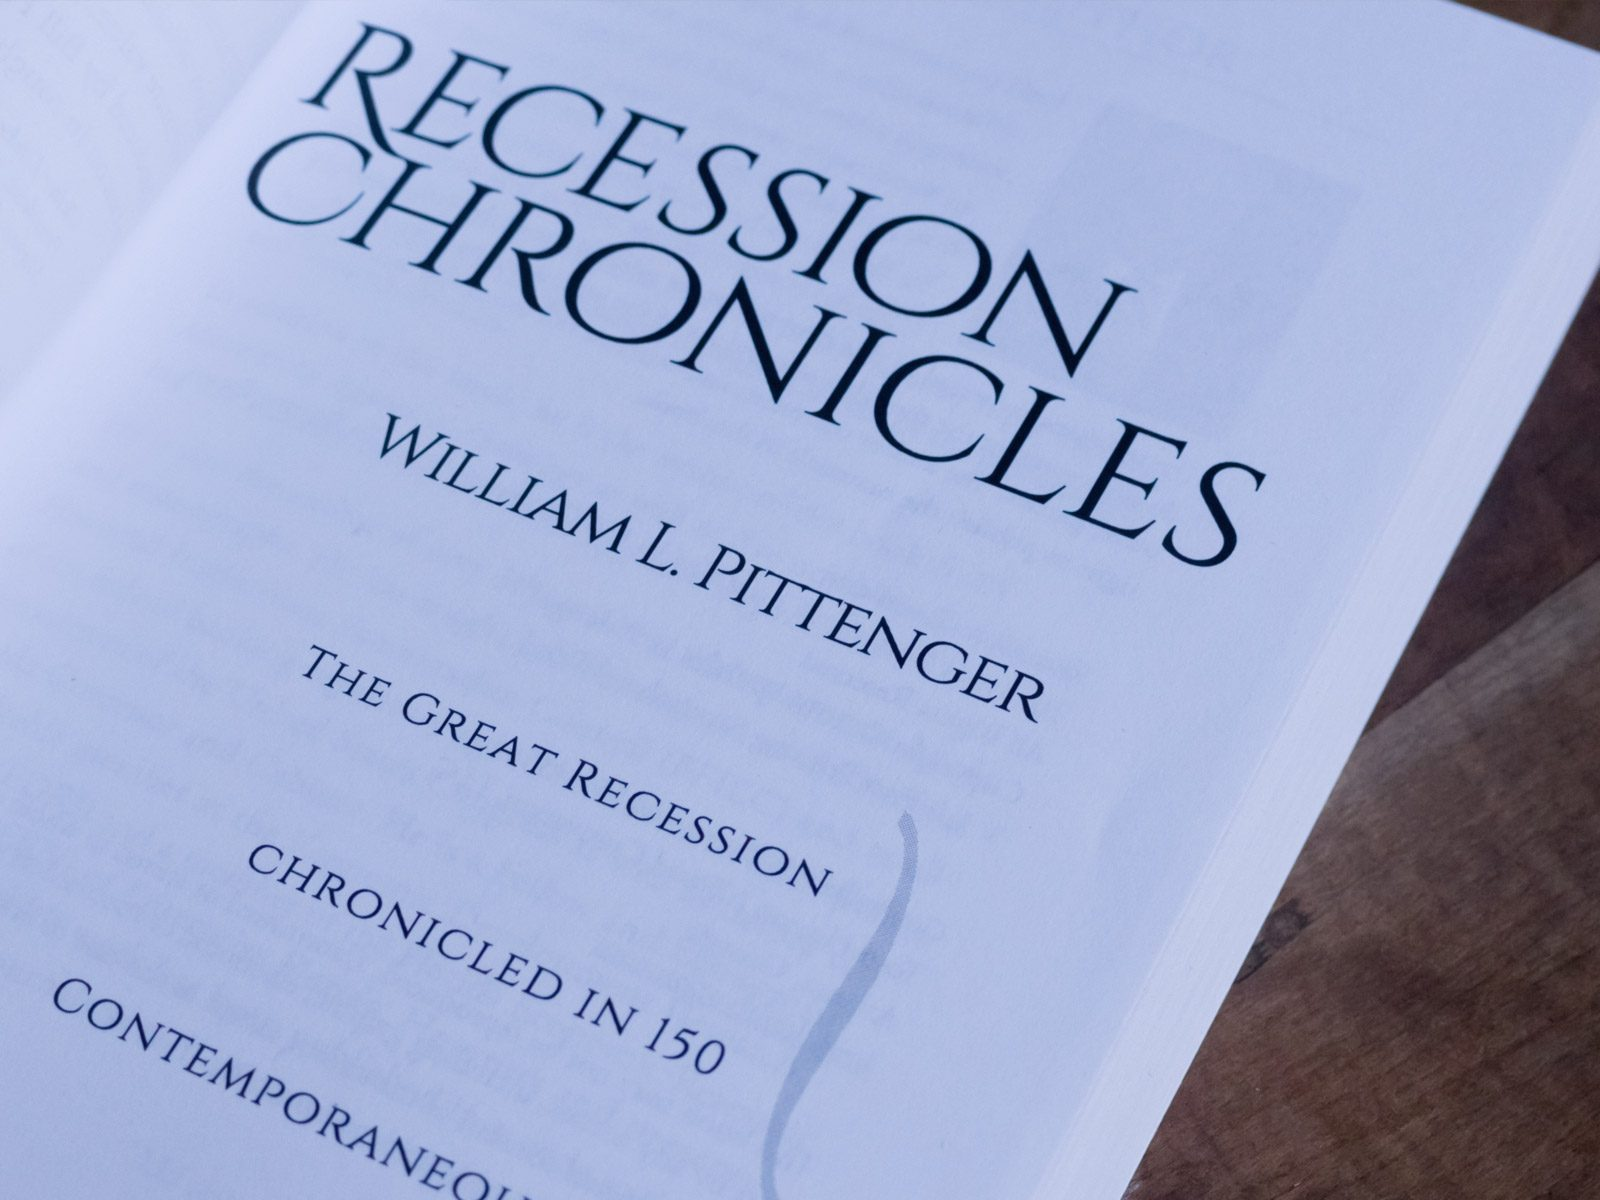 Title Page from Recession Chronicles Book